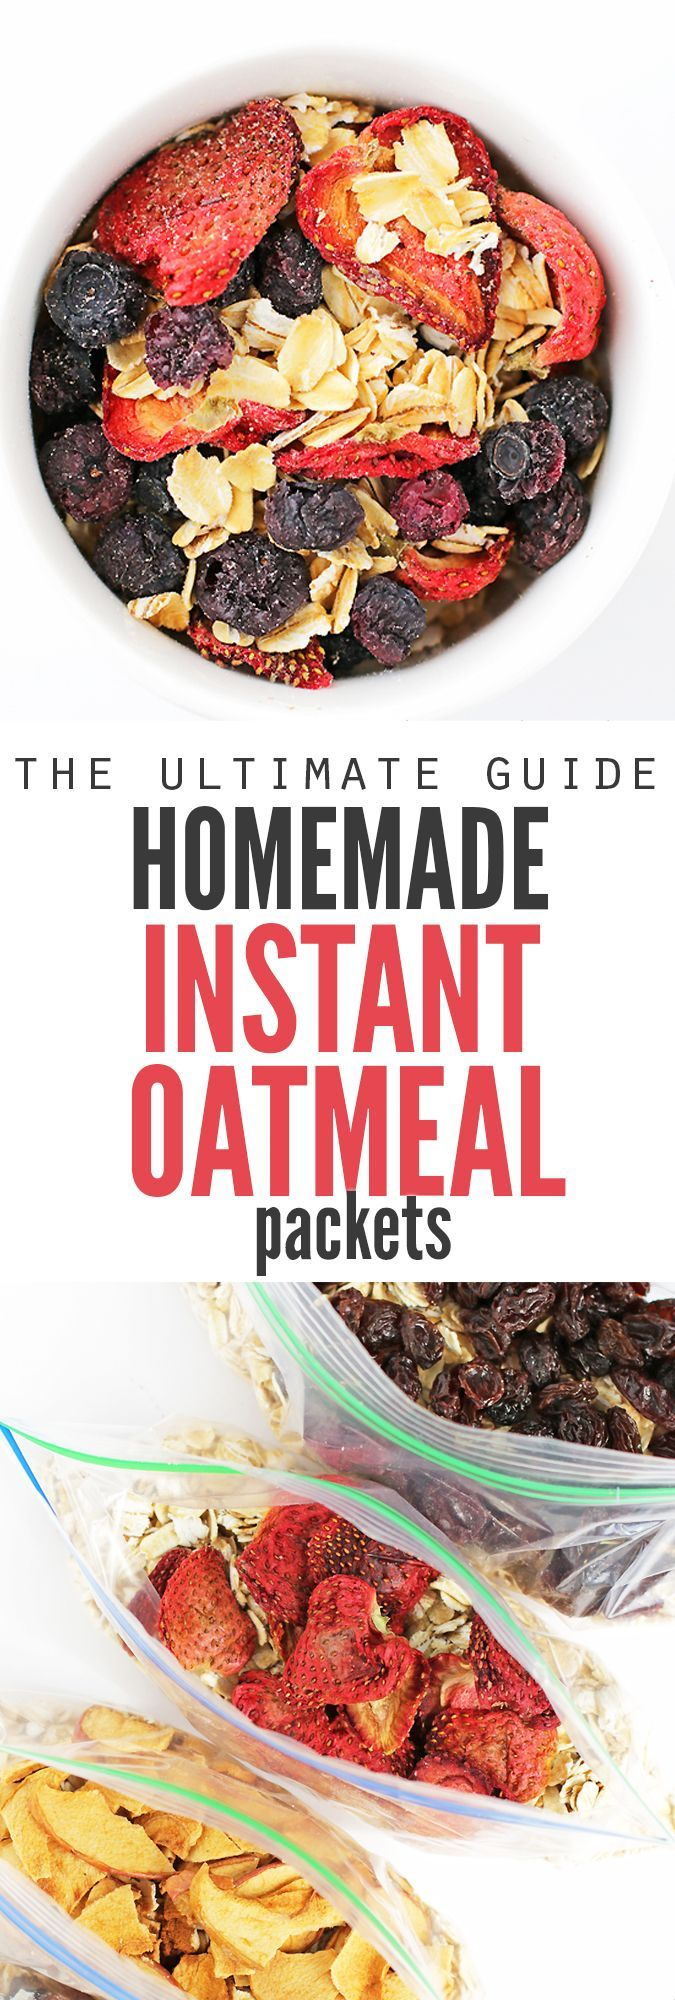 This ultimate guide to homemade instant oatmeal packets is so awesome! There's different flavor combinations, packing ideas, tips for including the kids (both in preparing and actually making the oatmeal in the morning) and homemade instant oatmeal packets are much healthier and frugal than store-bought. PLUS, you can make six weeks' worth of packets in less than an hour! :: DontWastetheCrumbs.com